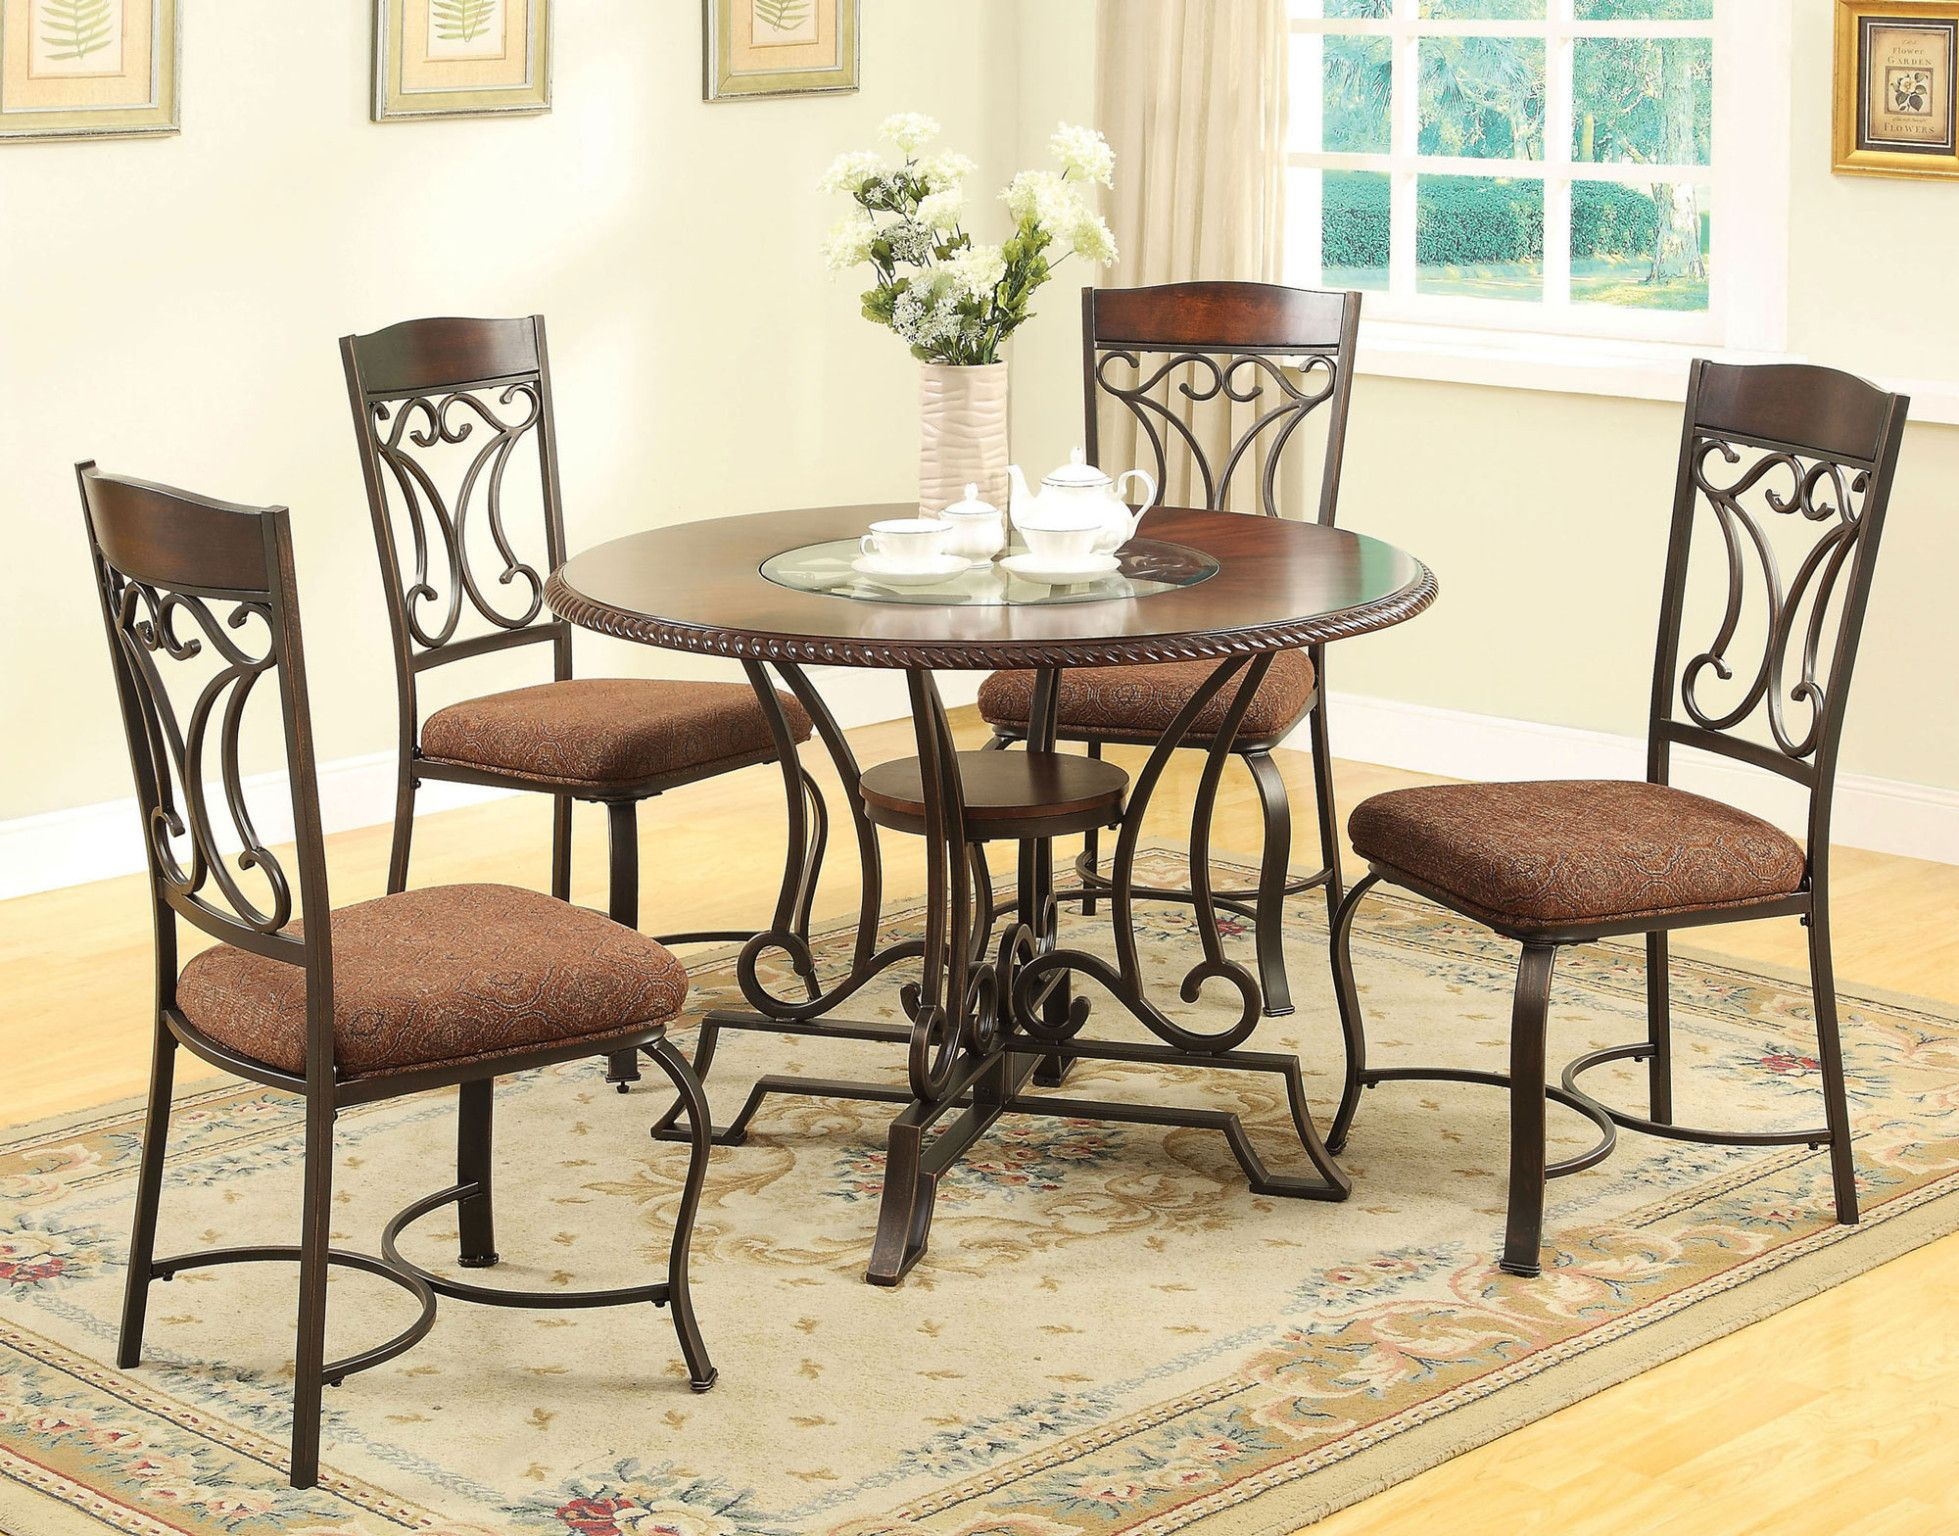 Jaimey 5 Piece Dinette Table And 4 Chairs Dk Oak Finish W Glass Insert Table And Wood Shelf In An Dining Table Round Dining Table Sets Side Chairs Dining